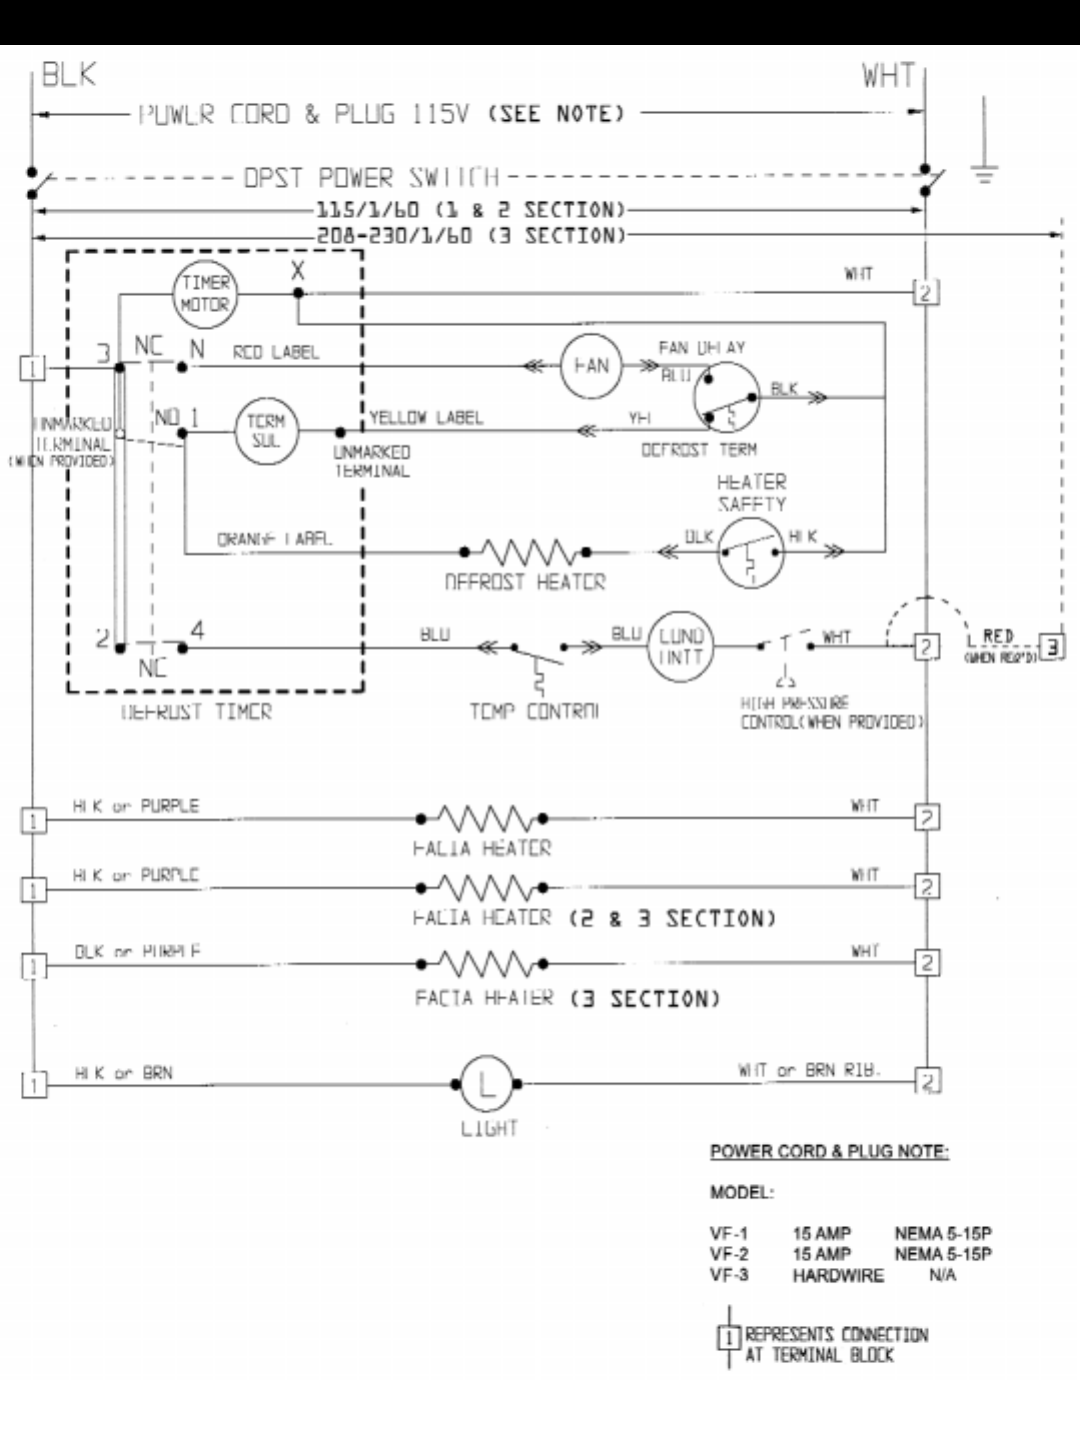 page 16 of victory refrigeration refrigerator vr 1 user guide 1 2 3 section zer wiring diagram